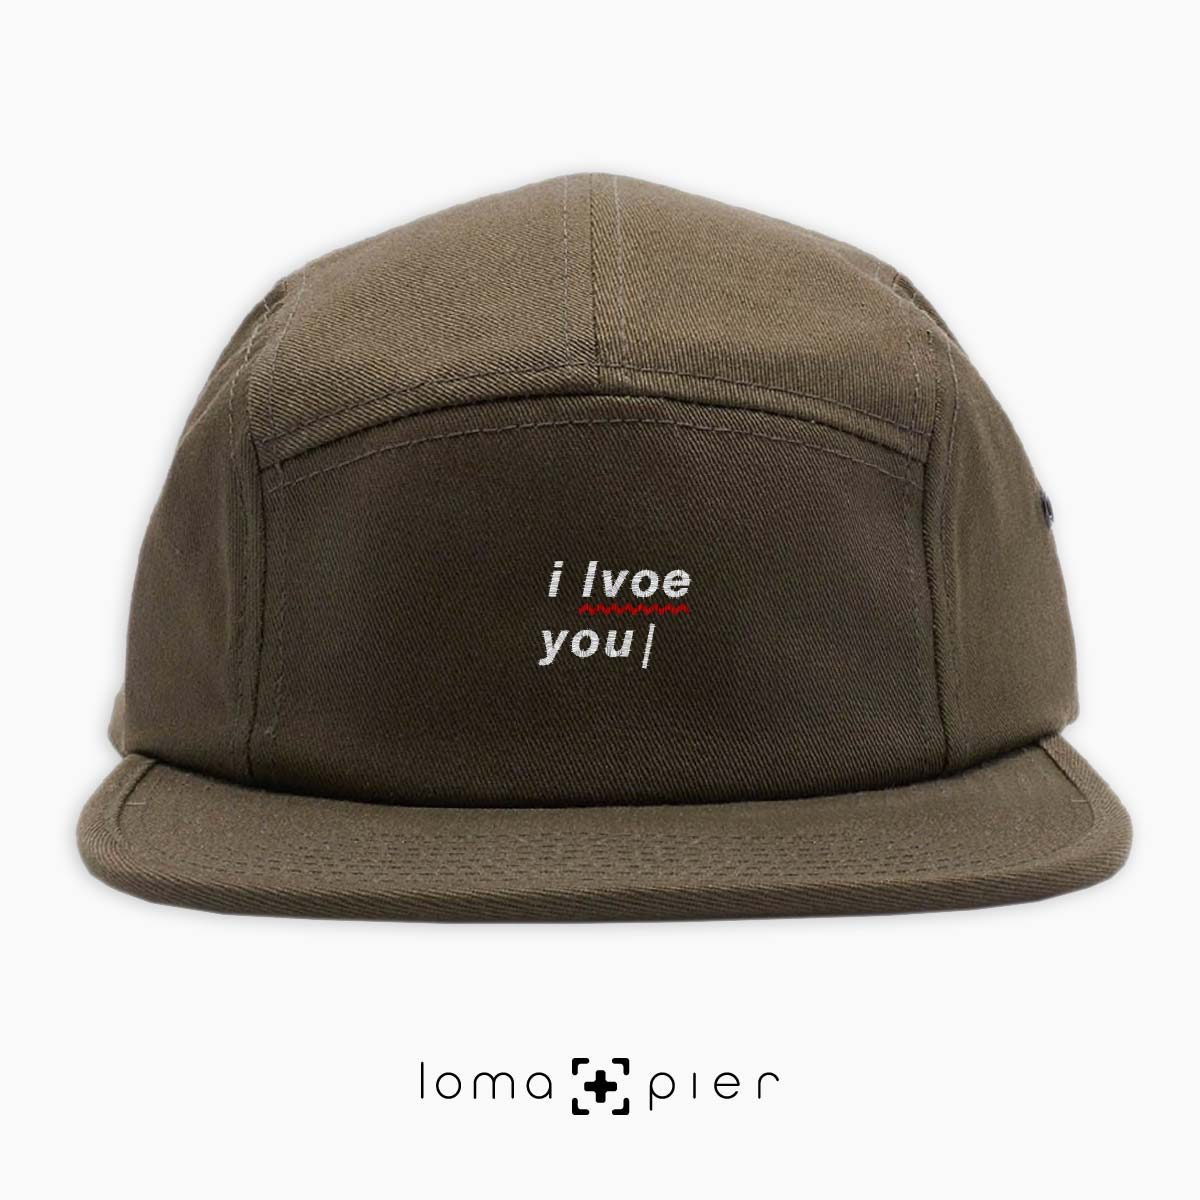 I LVOE YOU typography embroidered on an olive green cotton 5-panel hat with white thread by loma+pier hat store